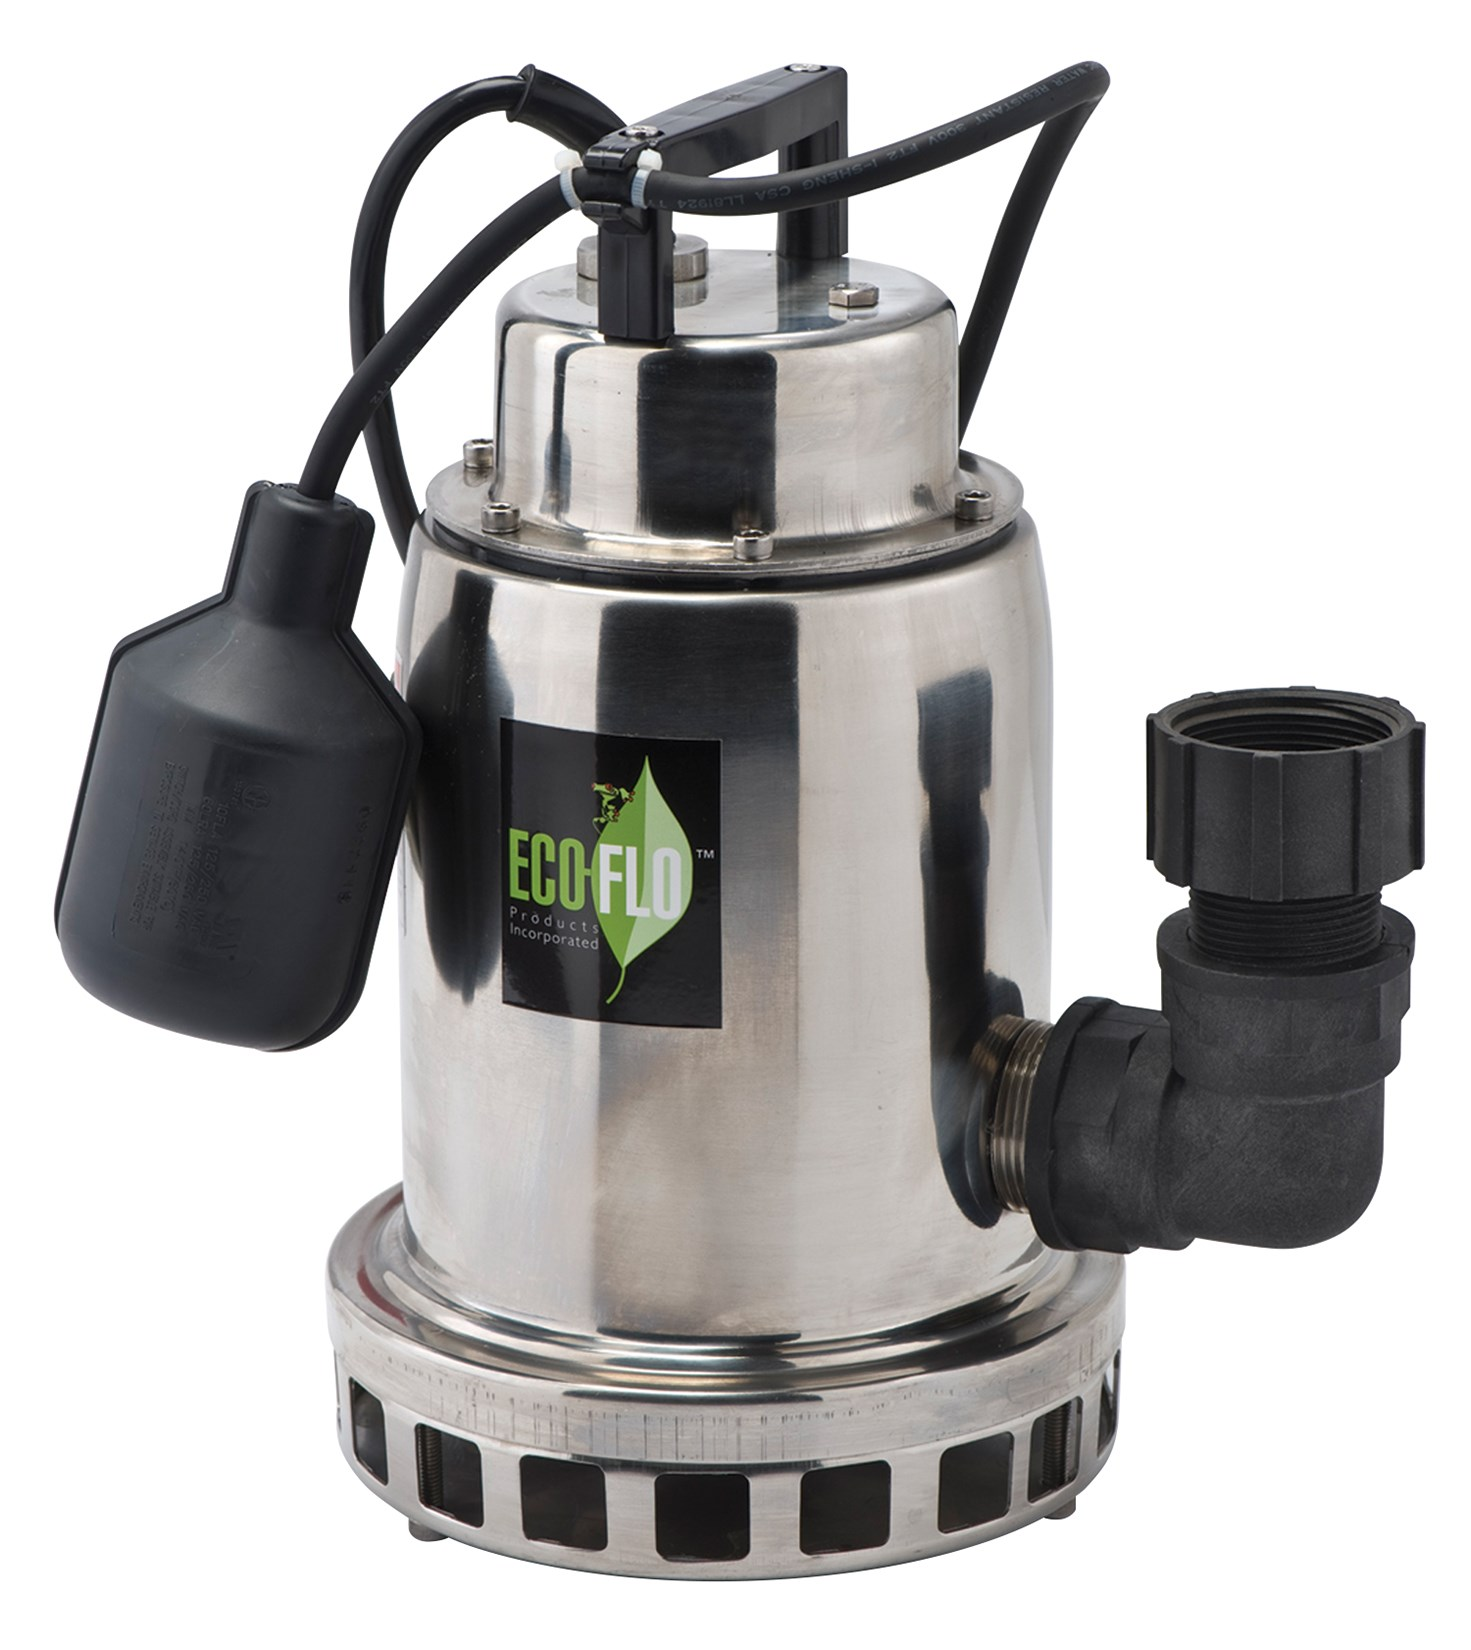 Eco Flo SEP75W 3/4 HP Stainless Steel Water Fountain Utility Pump